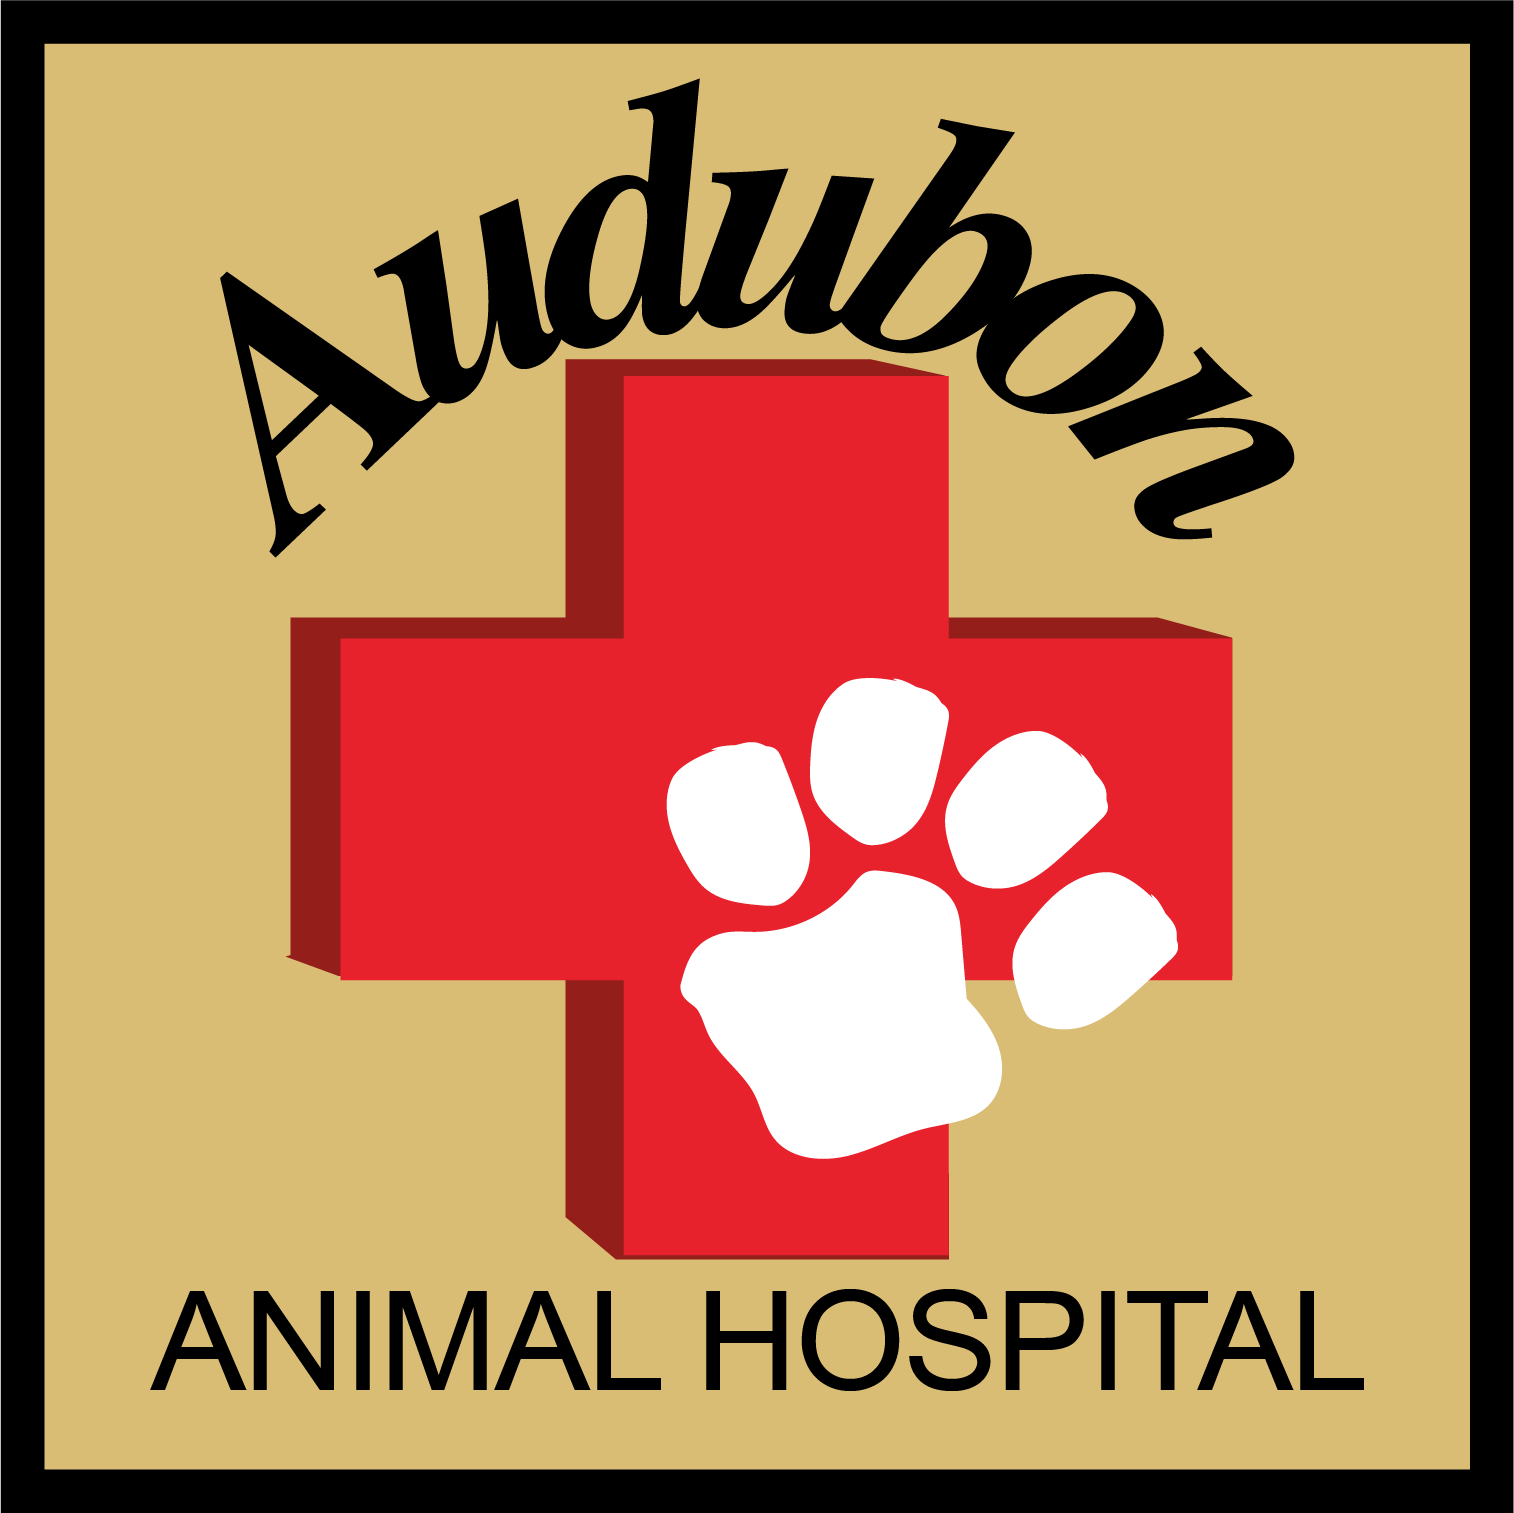 Audubon Animal Hospital